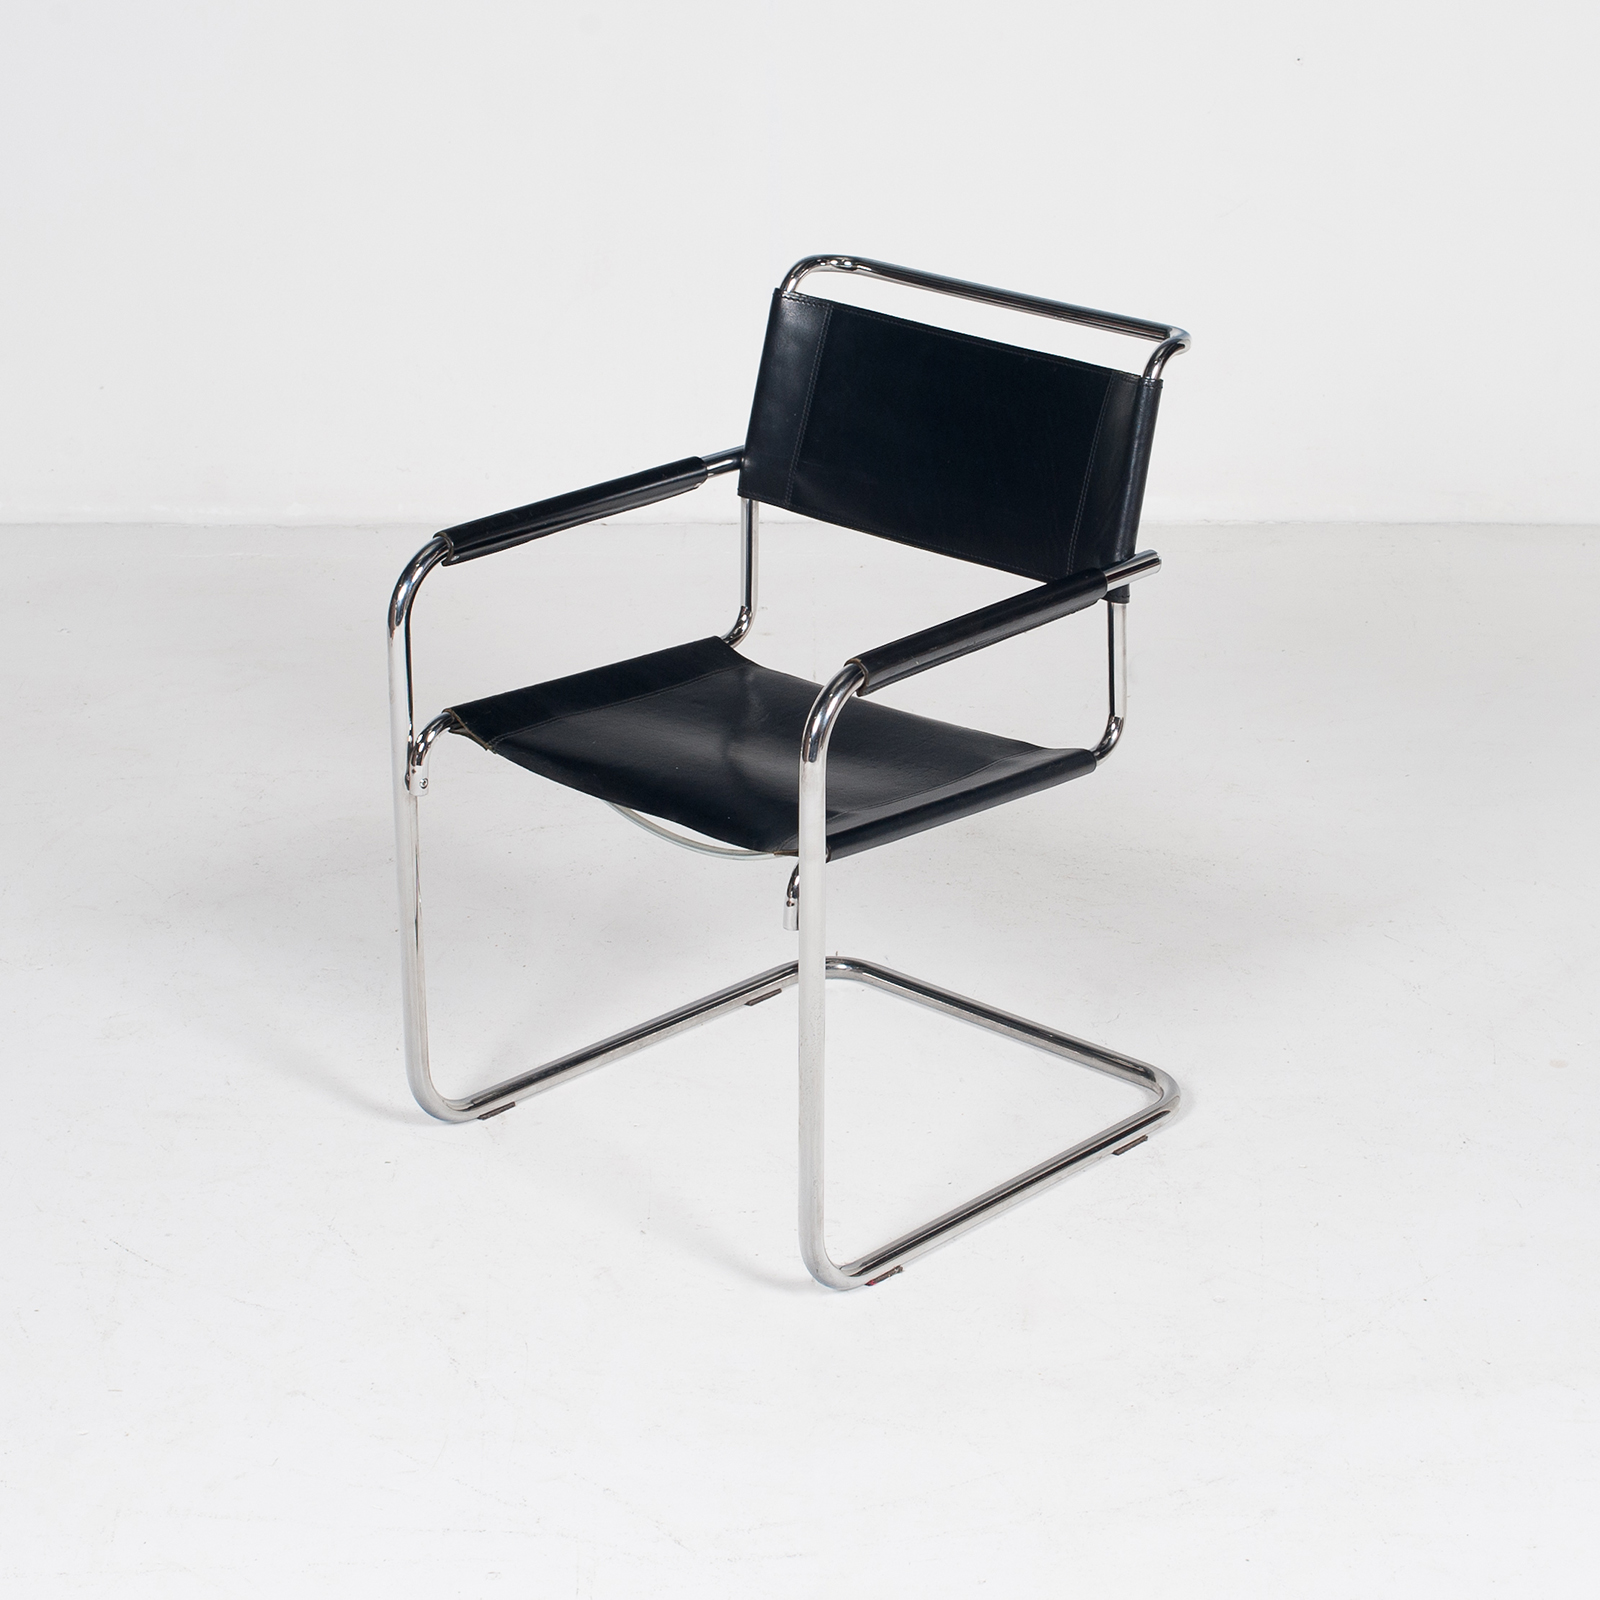 Set Of Four Cantilever Dining Chairs In Black Leather And Chrome By Mart Stam For Thonet, 1970s, The Netherlands 398